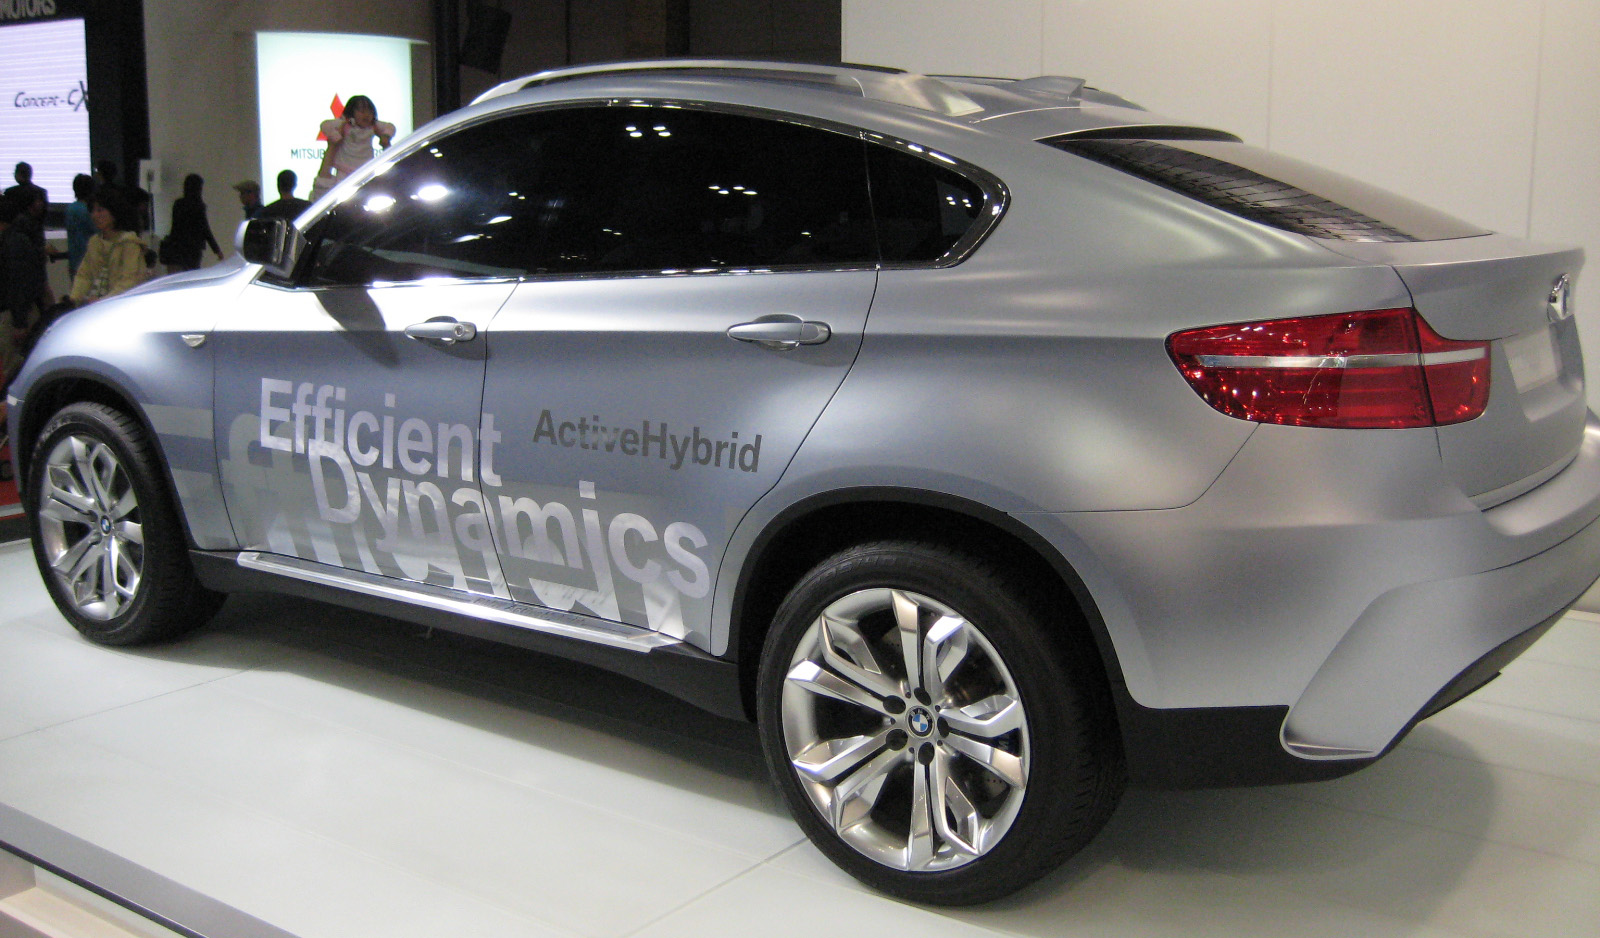 File:BMW Concept X6 Active Hybrid 02.JPG - Wikimedia Commons